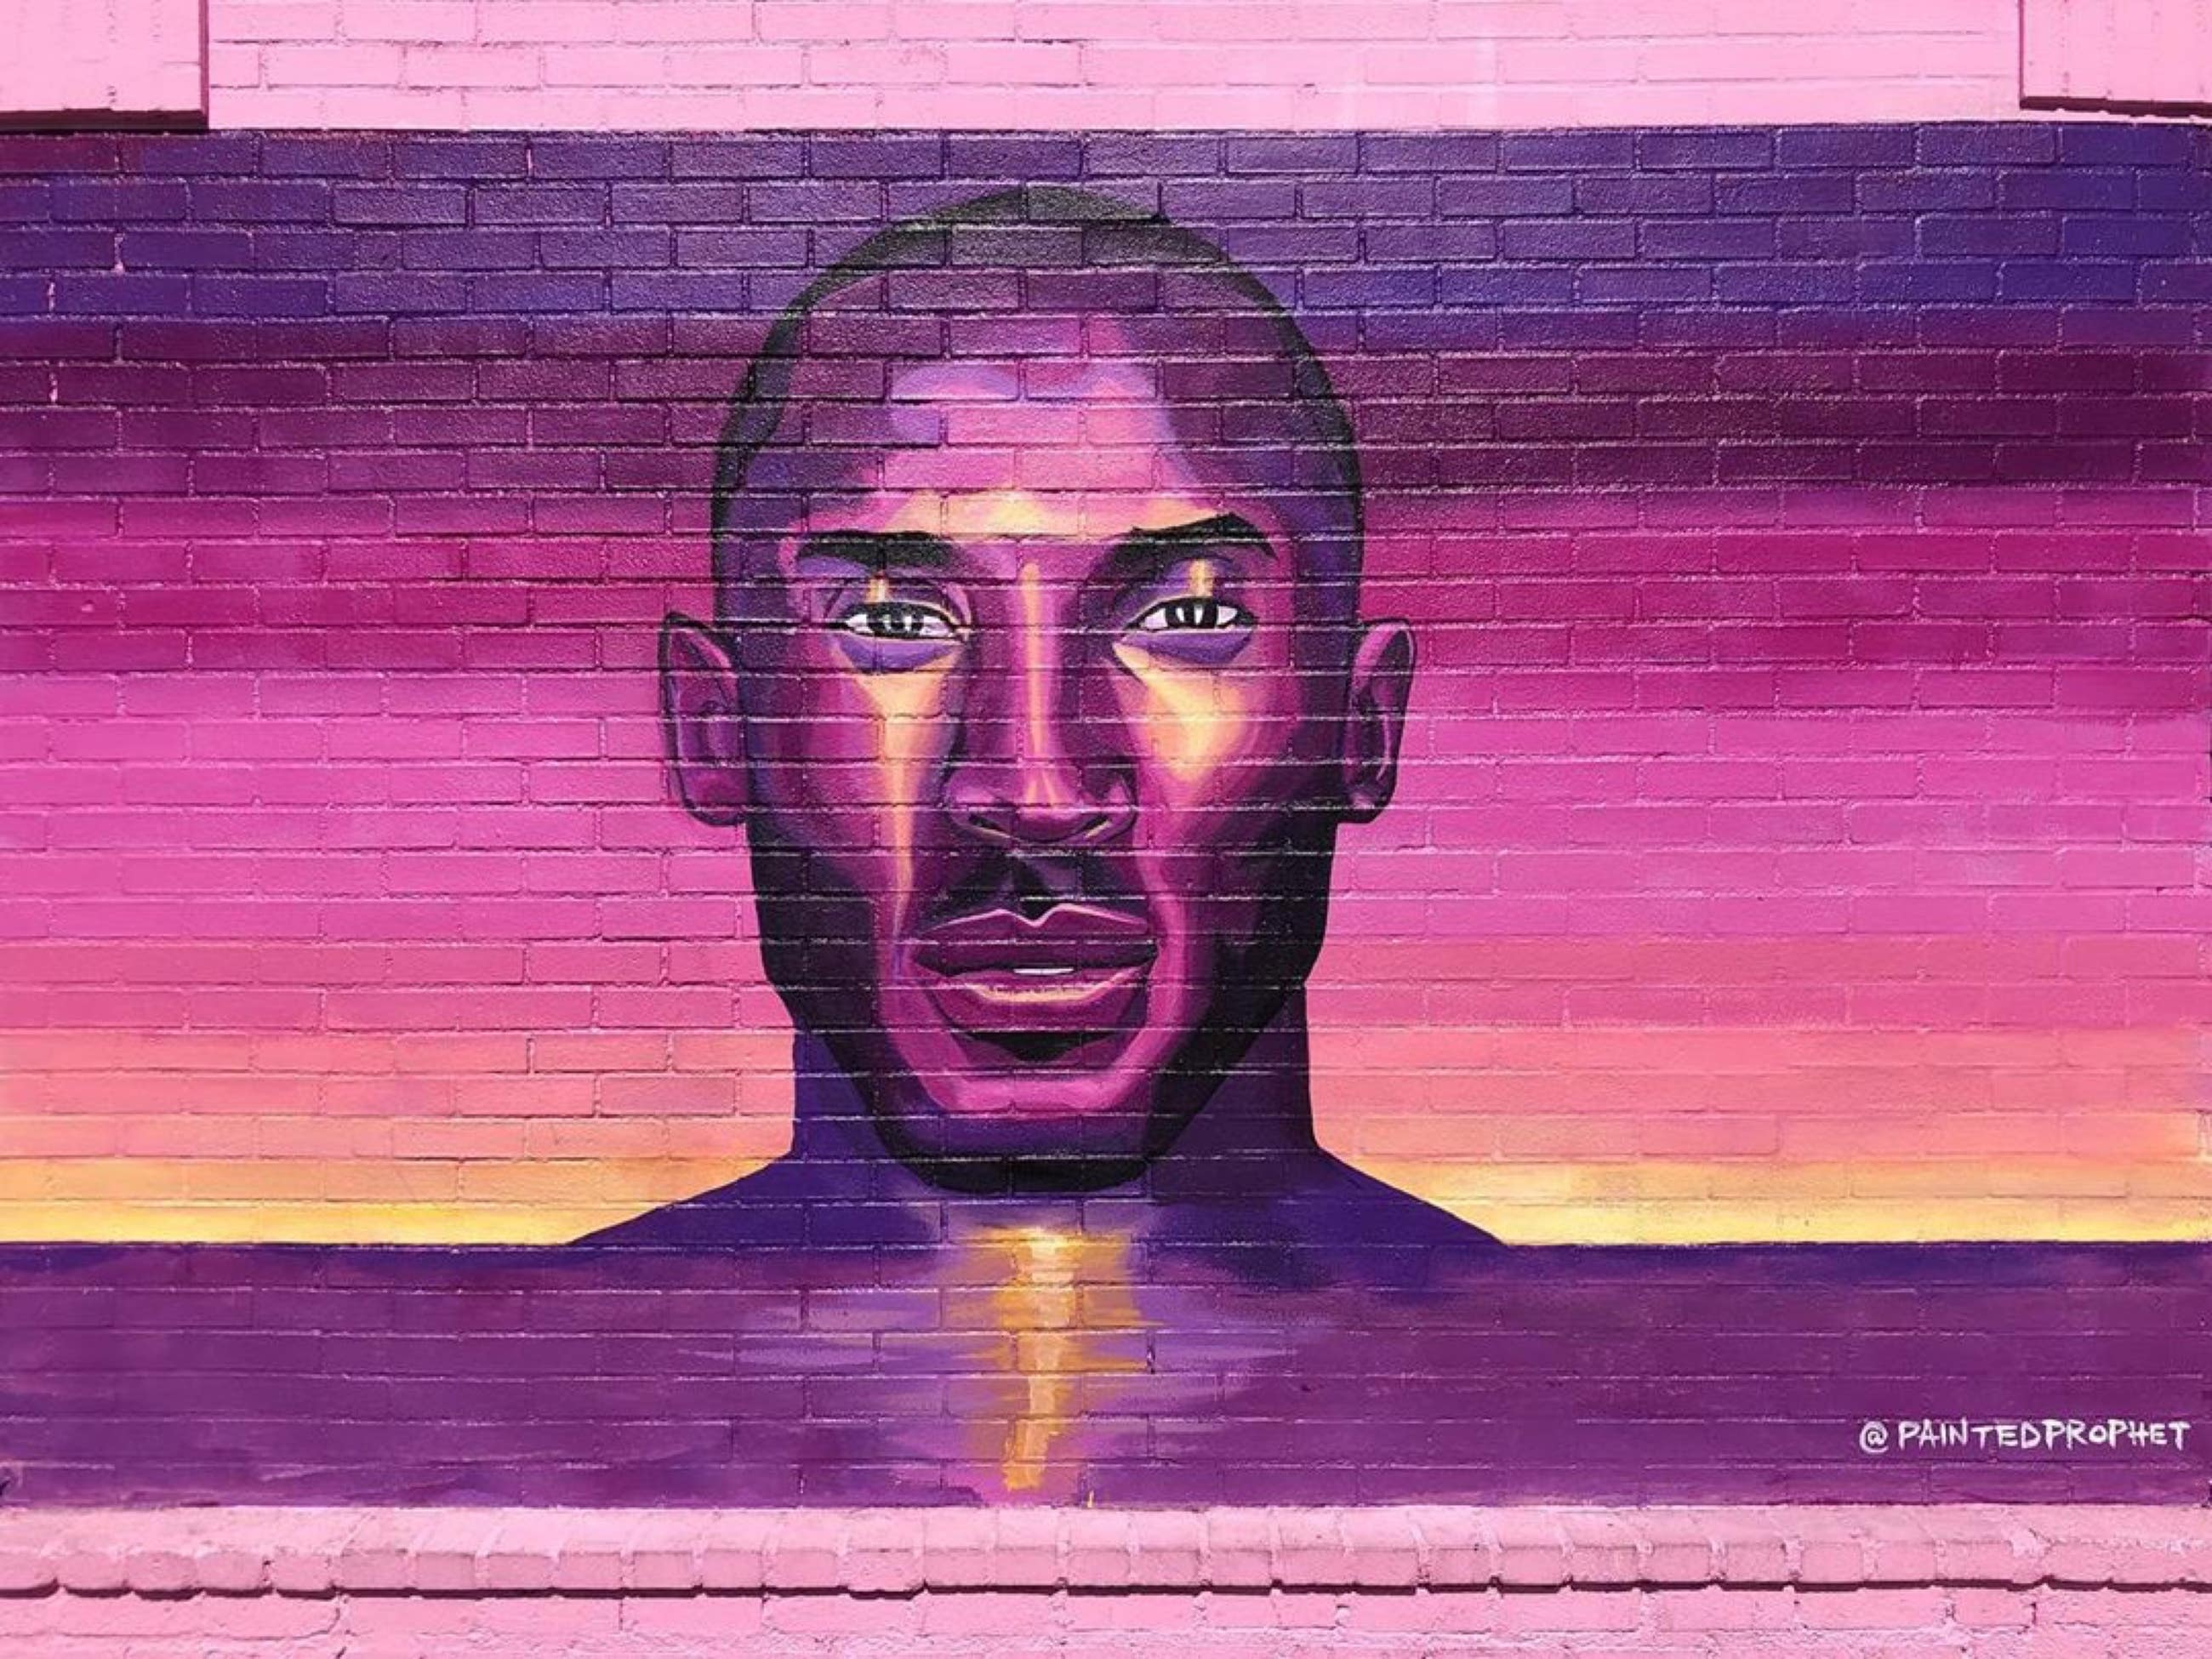 """Energy Never Dies"" Kobe Bryant mural by Painted Prophet at Sorella Boutique"